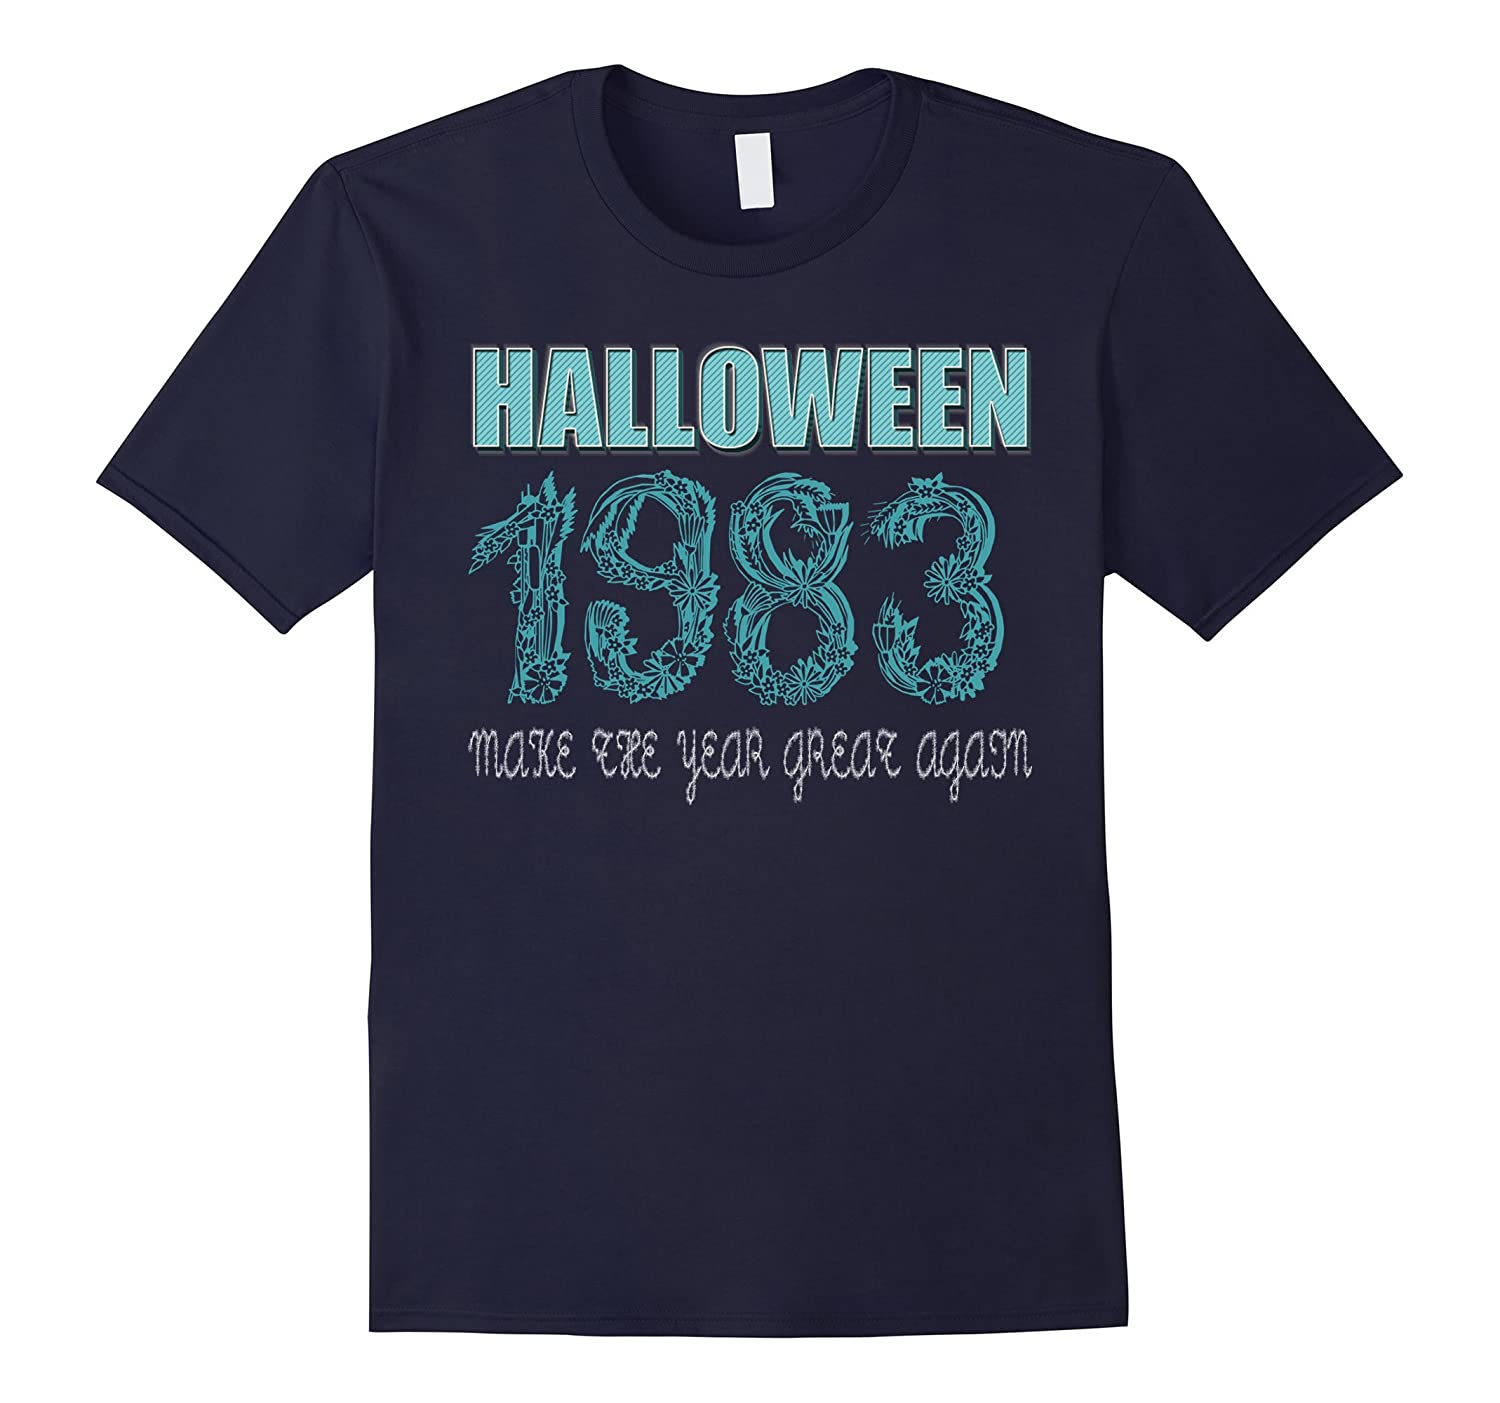 34 th Birthday shirt Halloween costume ideas 1983 T-shirt-FL